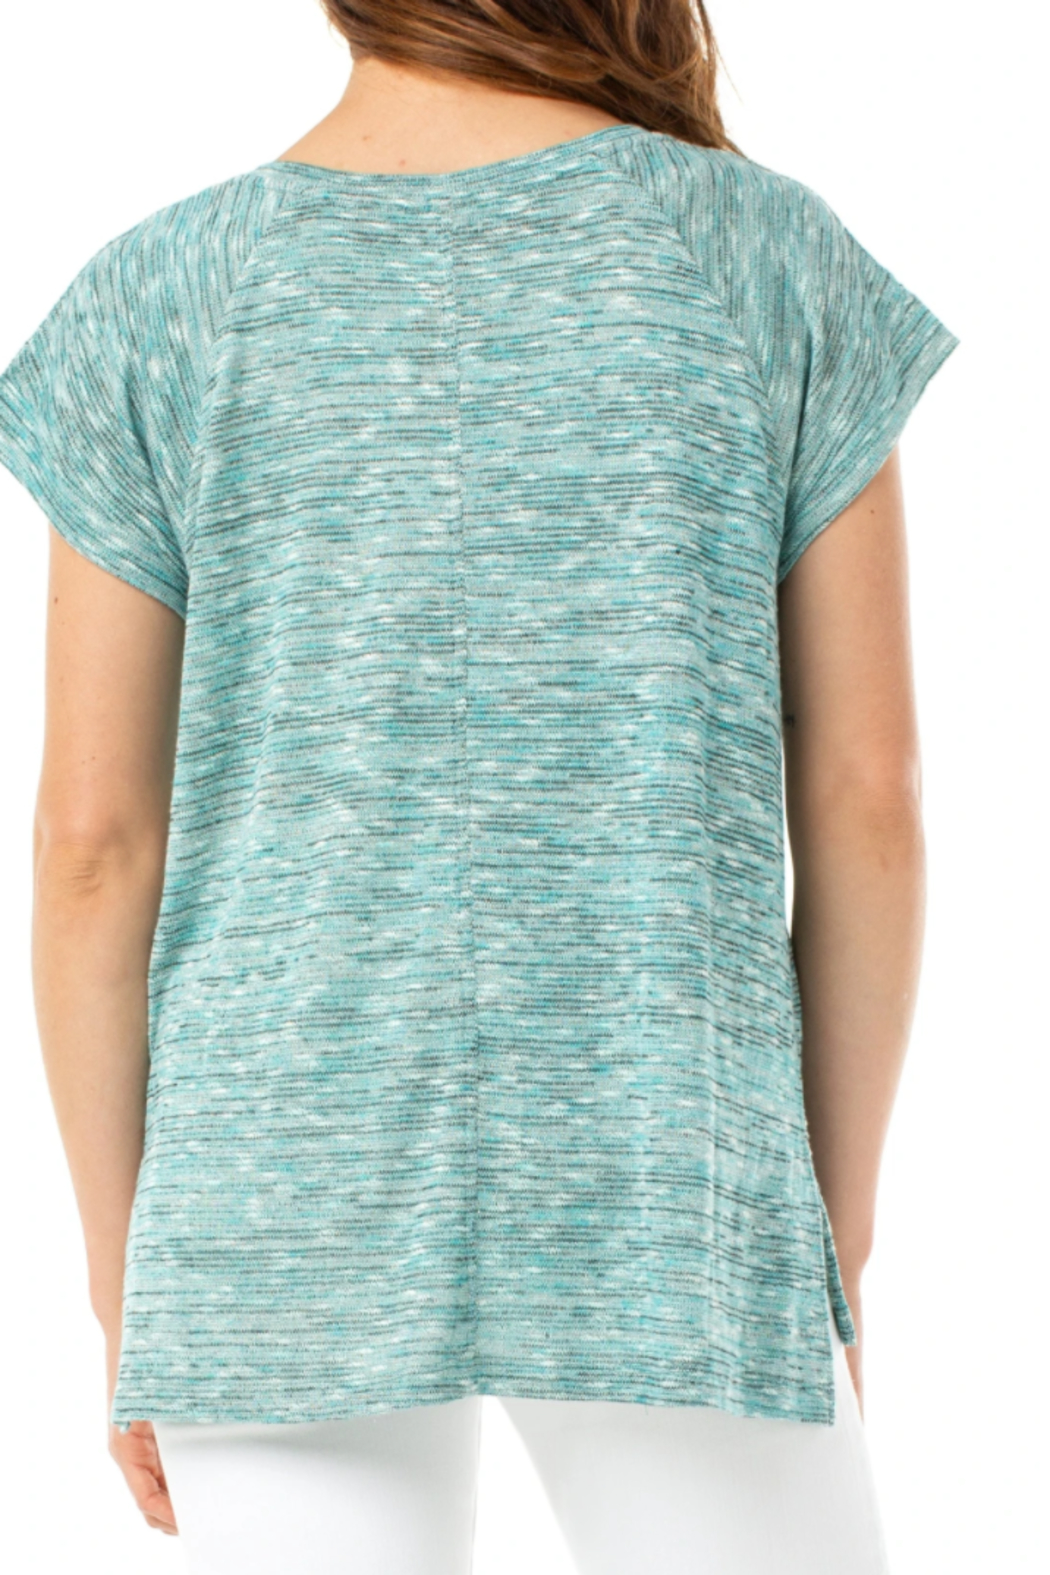 Liverpool Oversized Dolman Knit Top - Front Full Image